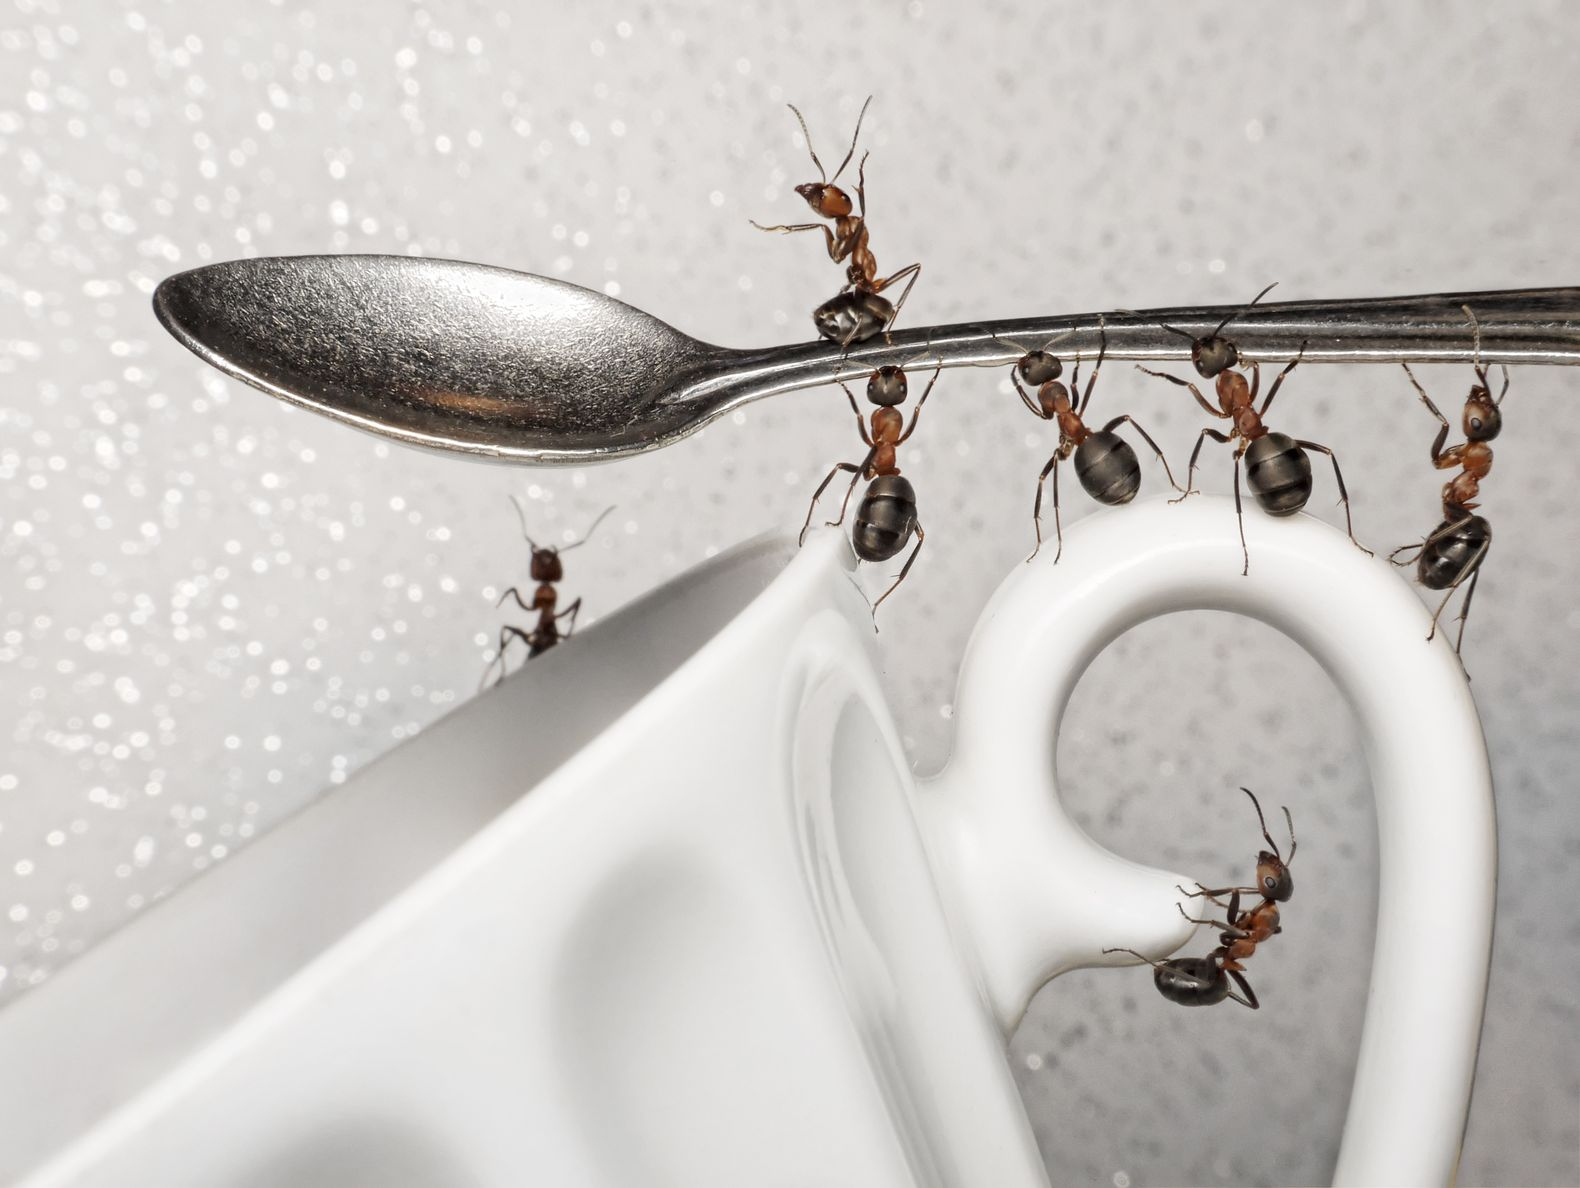 How To Get Rid Of Ants In The Kitchen - A Very Cozy Home